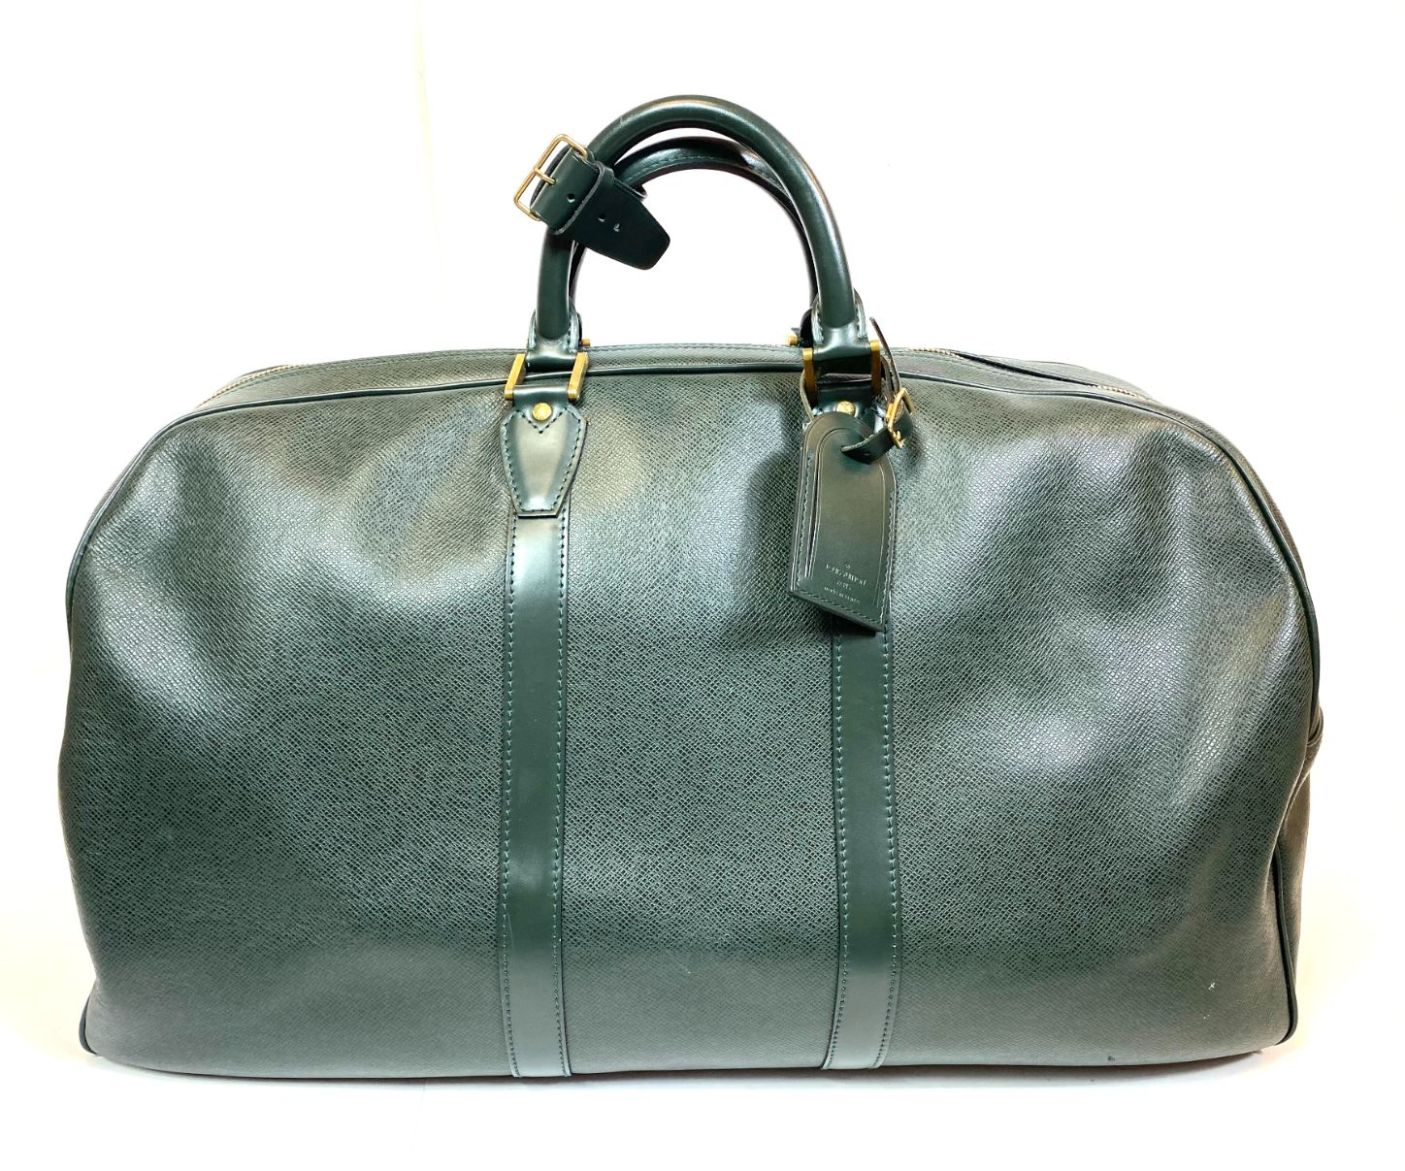 Mala de Mão Louis Vuitton Keepall Verde